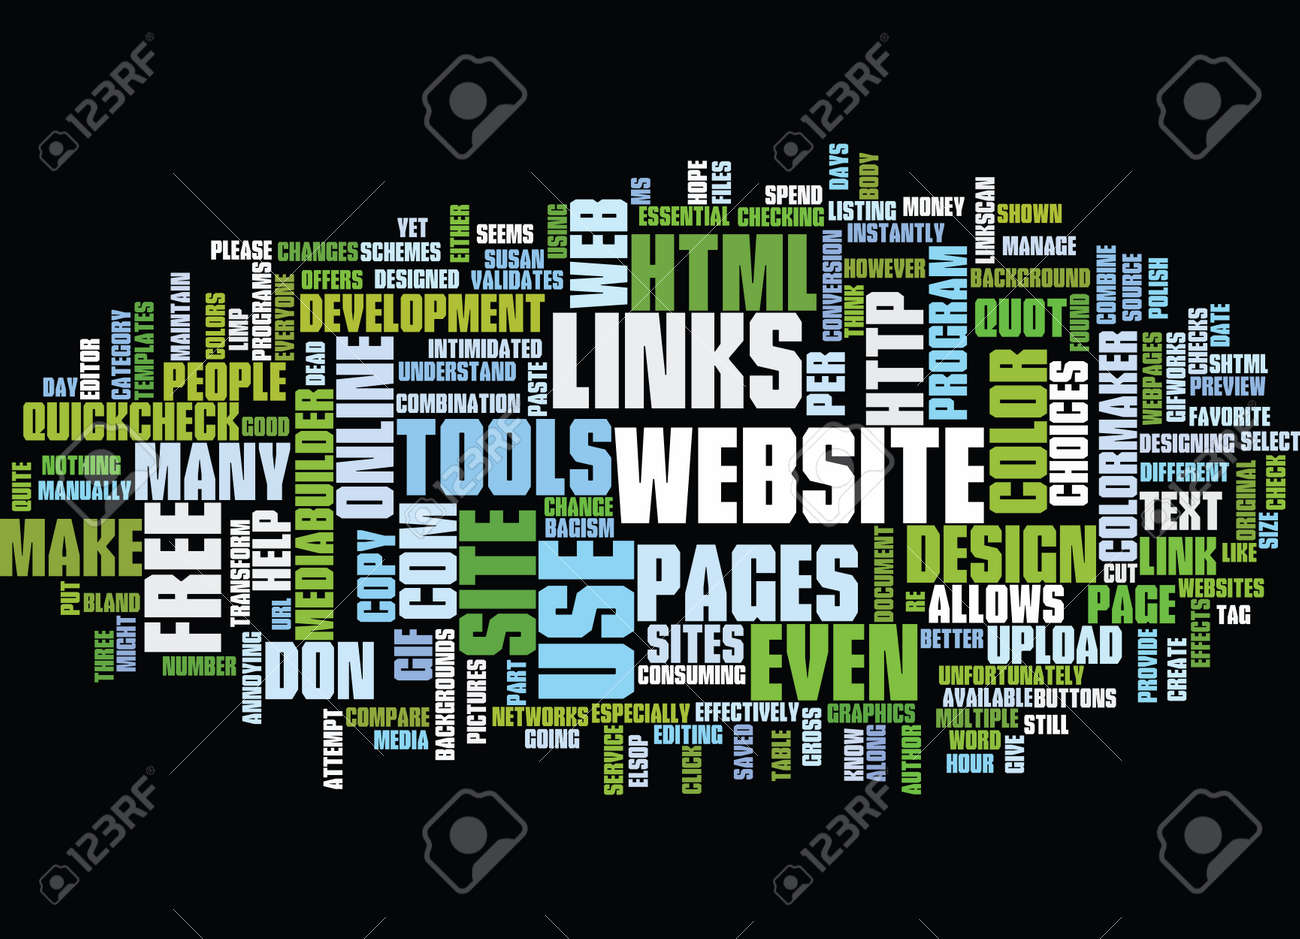 free online tools to design and maintain your website text